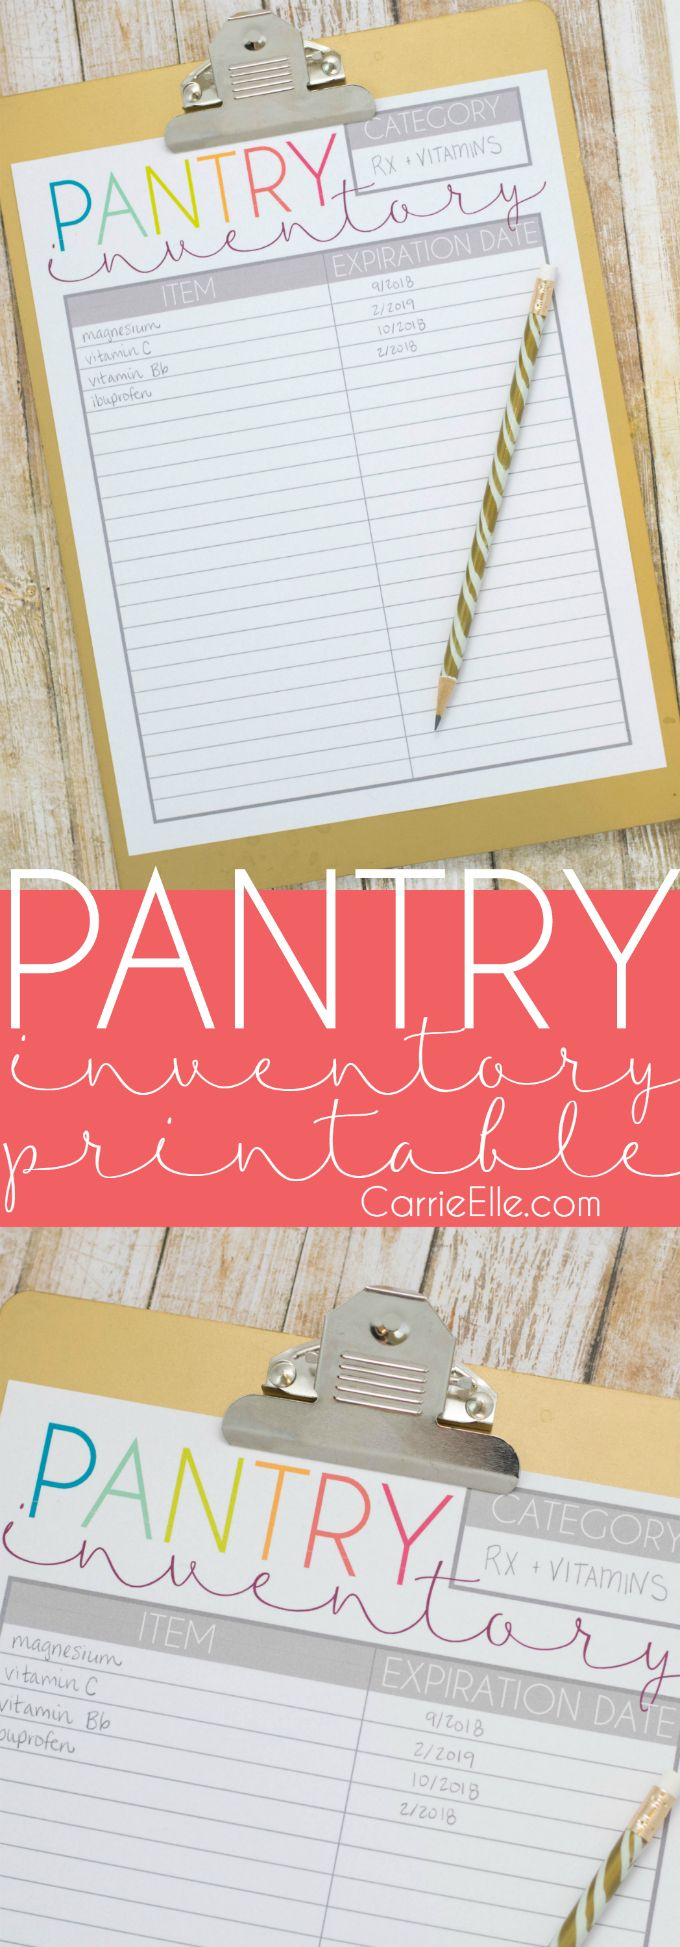 Printable Pantry Inventory List - keep up with what's in your pantry! I use mine to keep track of prescription drugs and vitamins so I know when it's time to toss or replace them. #TheCVSDifference ad